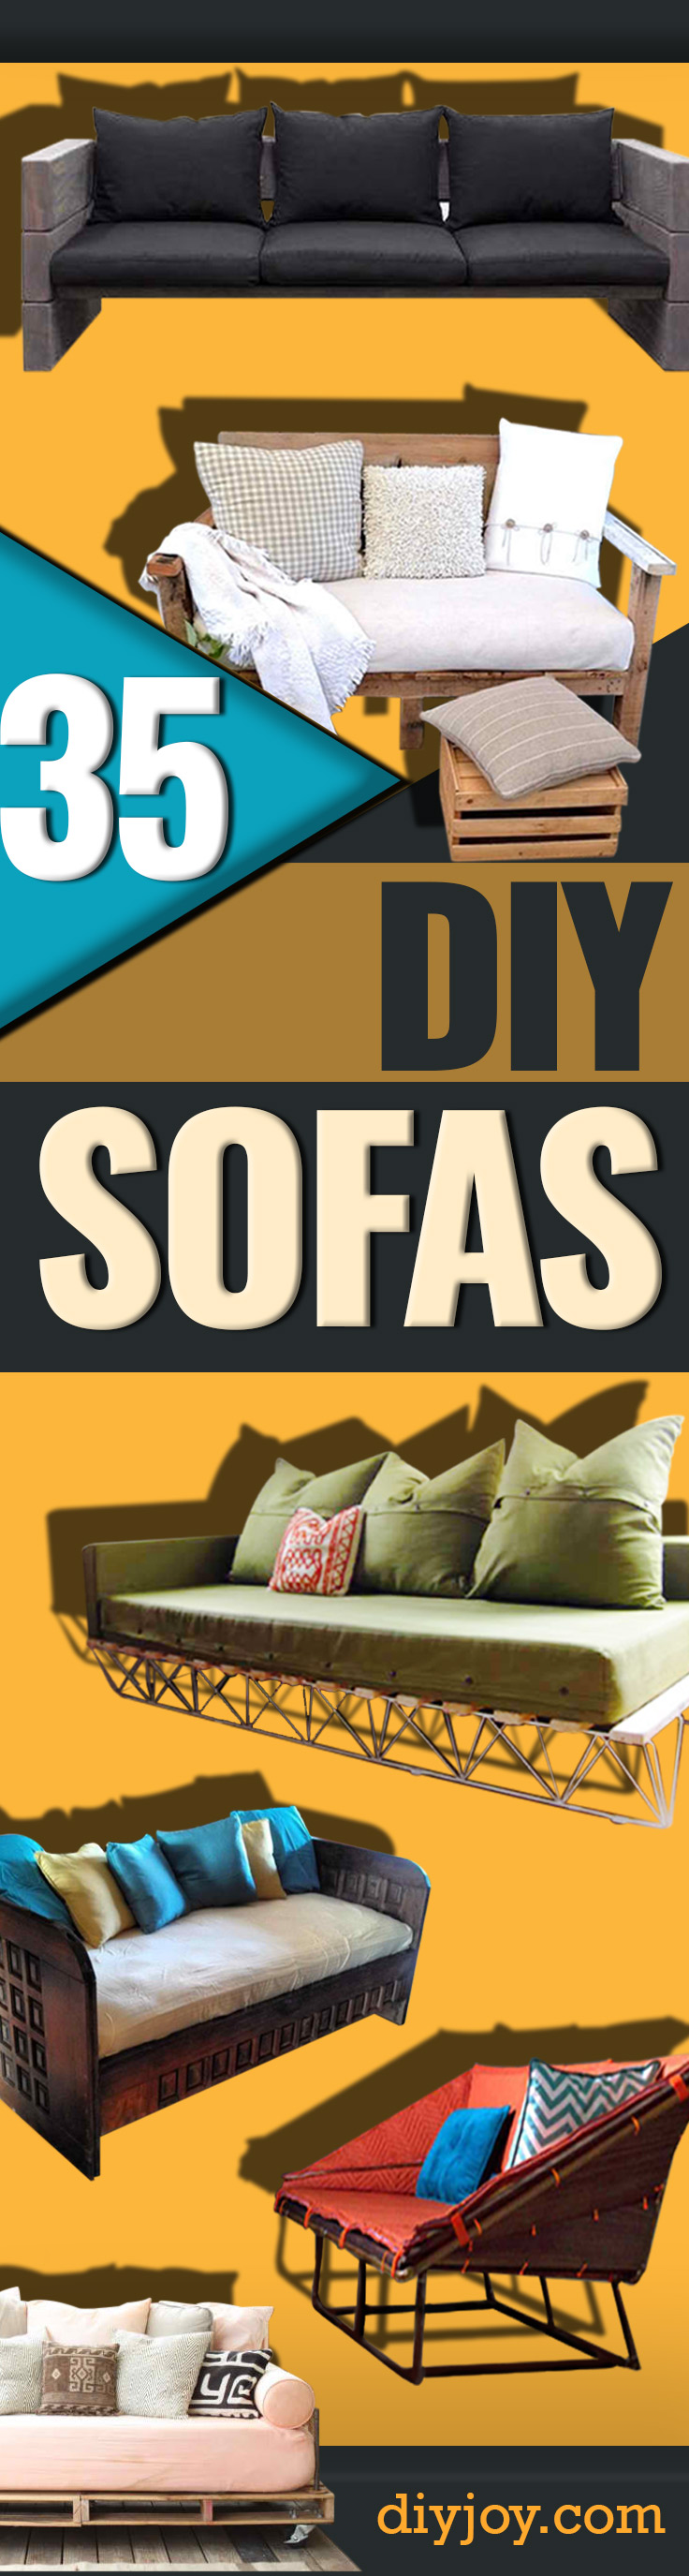 Sofa Couch Sofas 35 Super Cool Diy Sofas And Couches